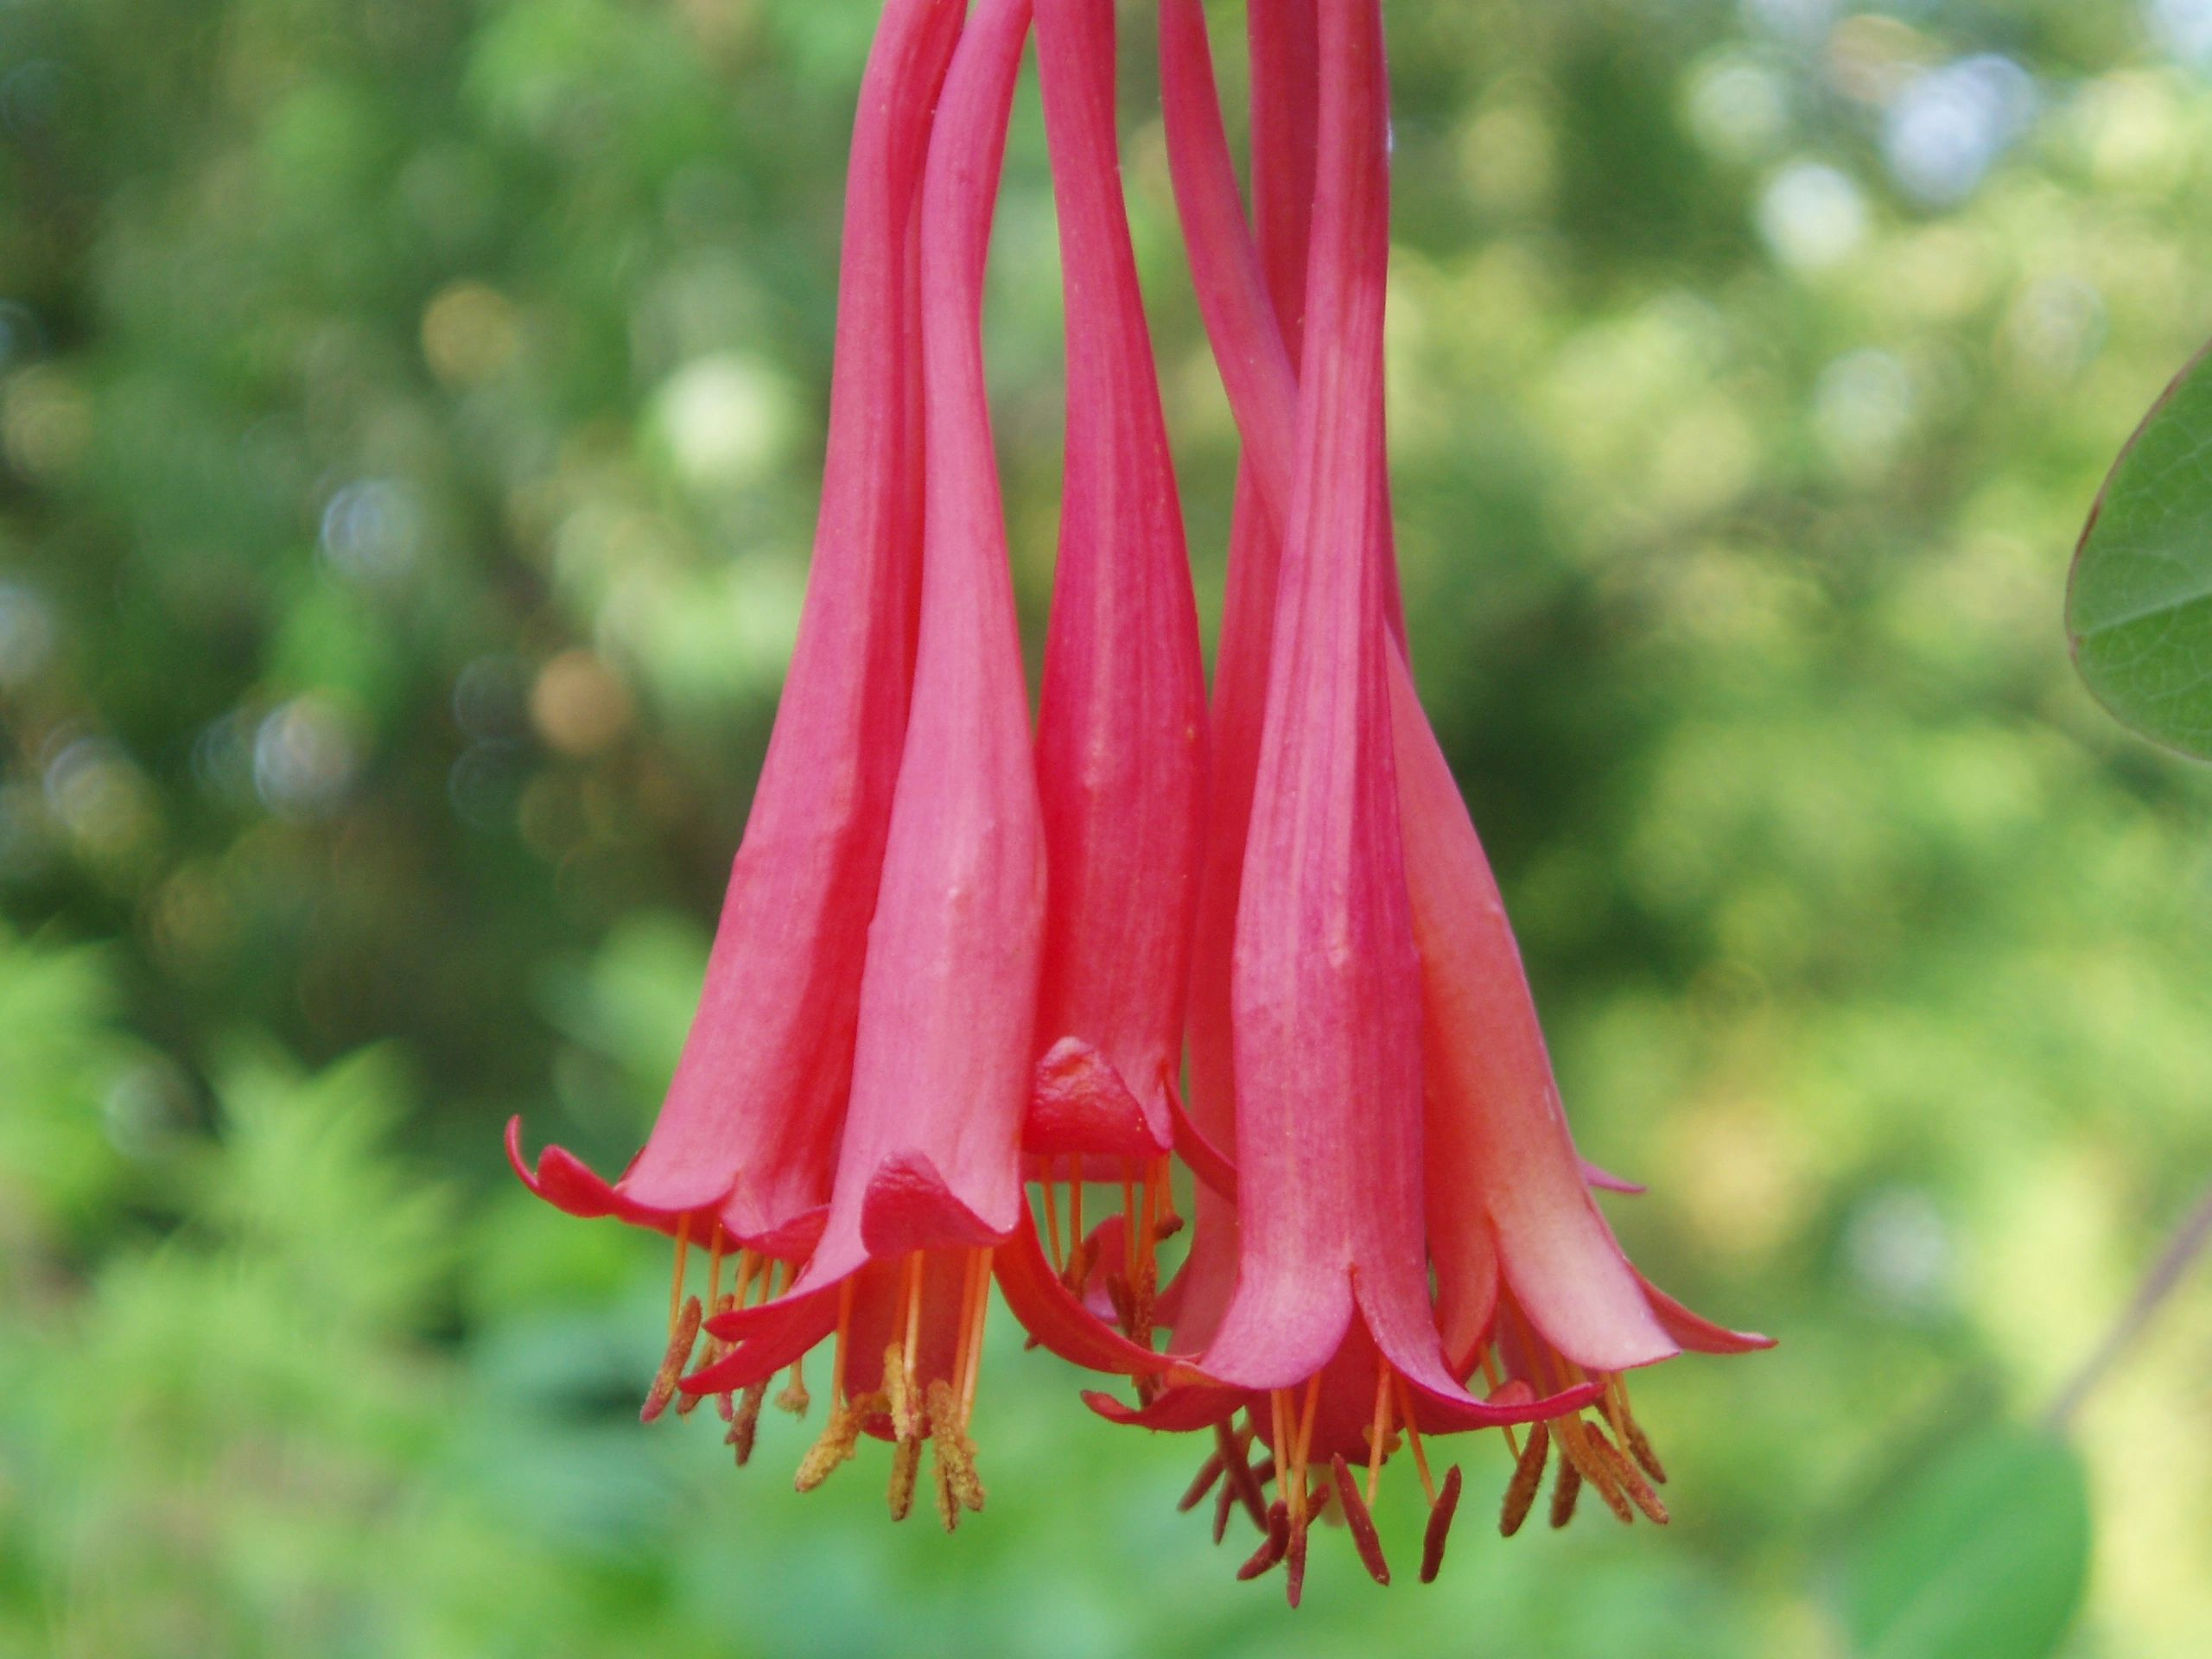 "{""blocks"":[{""key"":""dg77r"",""text"":""Lonicera sempervirons Red Trumpet Honeysuckle Vine, -  potted plants email john@easywildflowers.com  john@easywildflowers.com  "",""type"":""unstyled"",""depth"":0,""inlineStyleRanges"":[],""entityRanges"":[],""data"":{}}],""entityMap"":{}}"